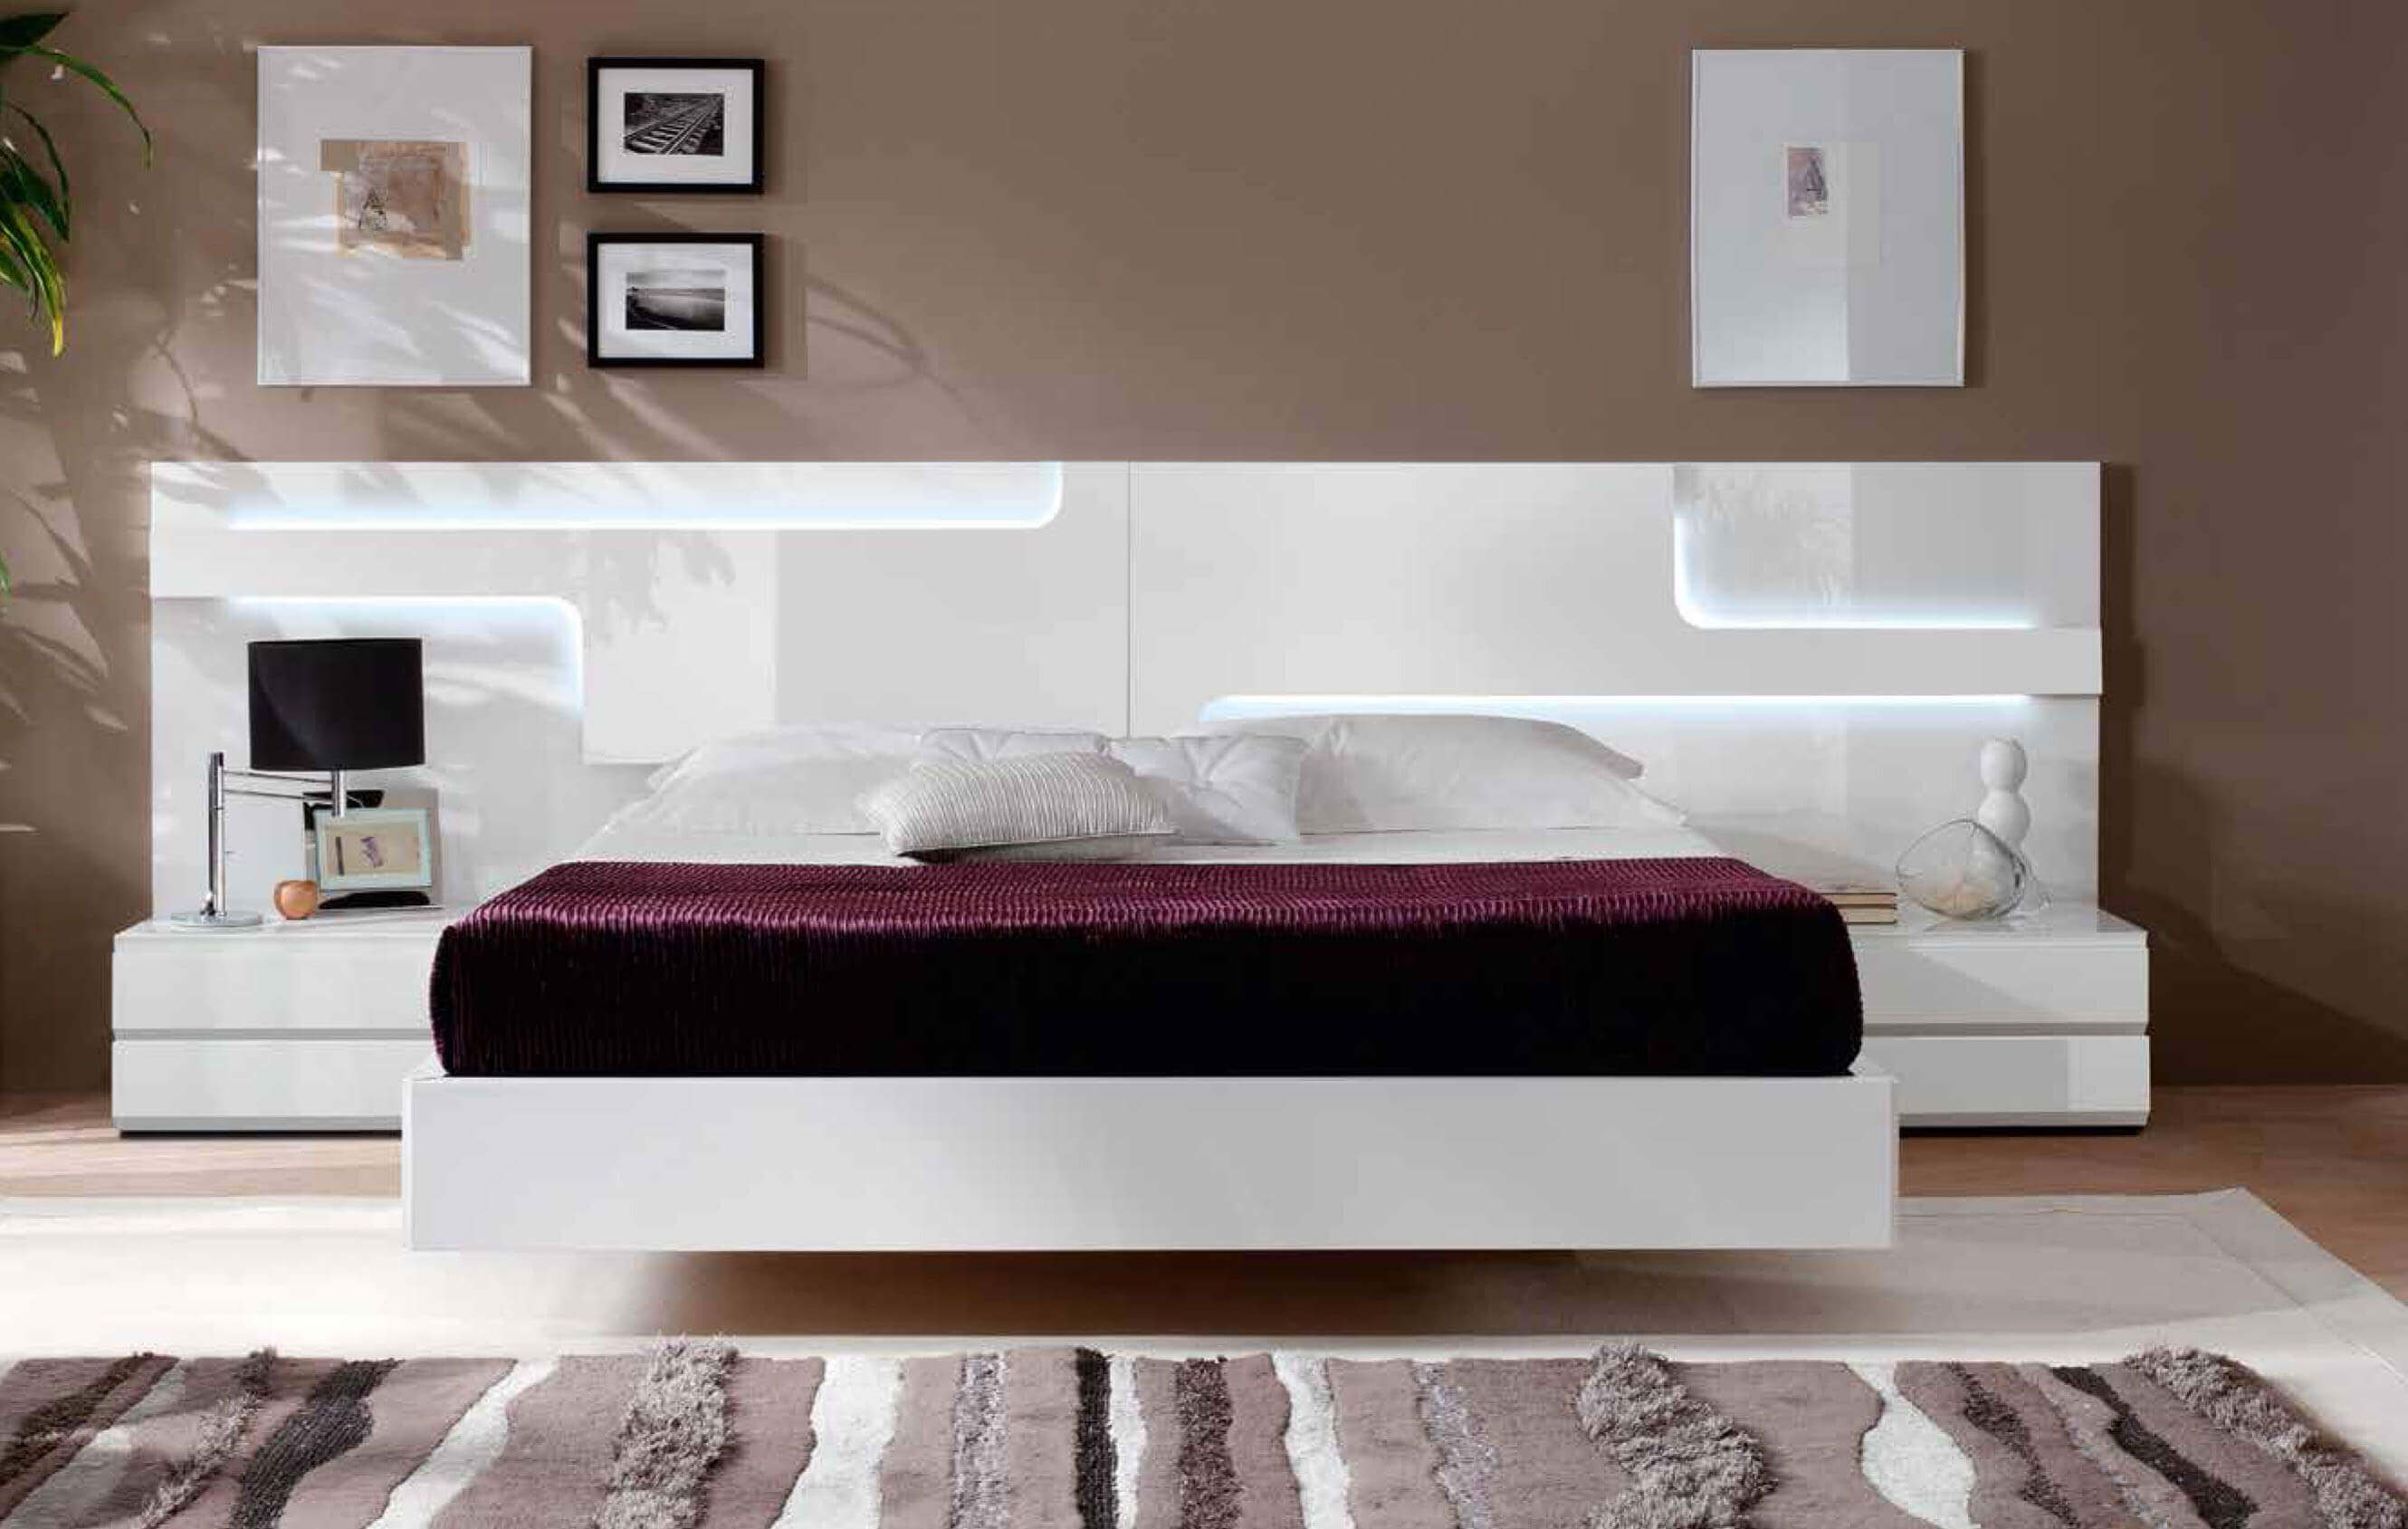 Brown-Colors-for-Walls-as-Elegant-King-Size-Beds-as-Well-Contemporary-Bedroom-White-Furniture.jpg